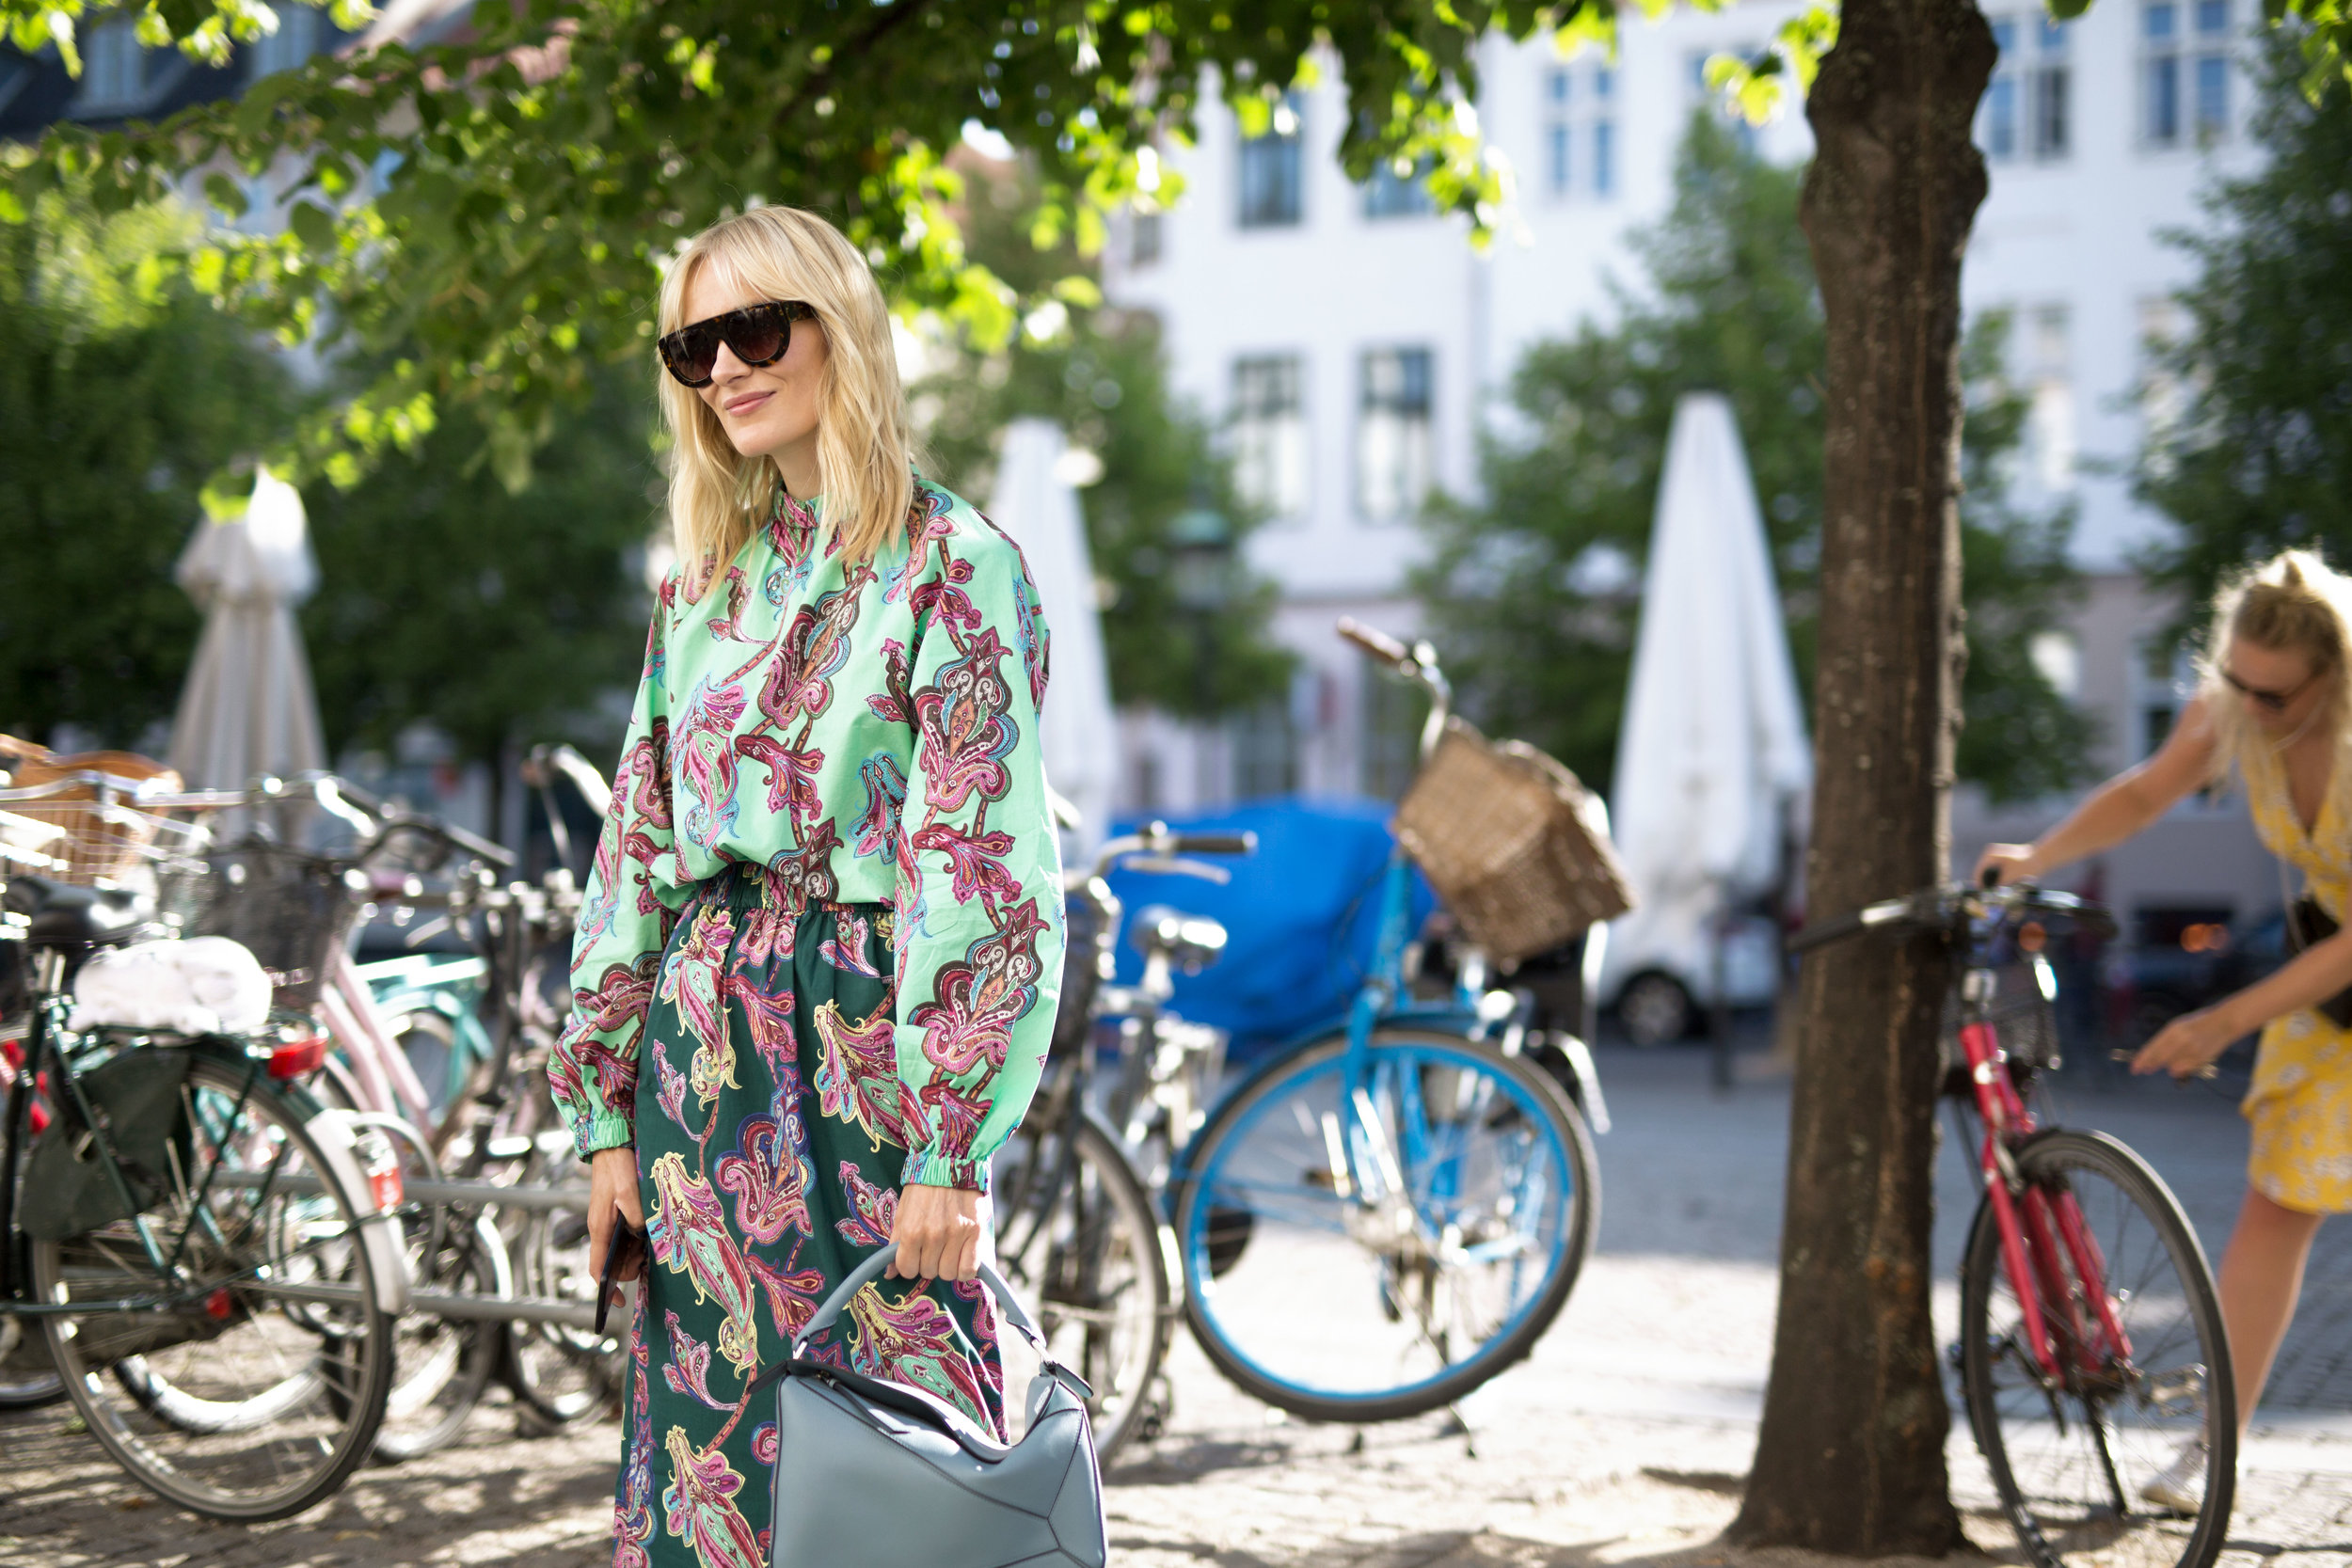 TheStreetland_Copenhagen_Fashion_Week_SS19_88.jpg